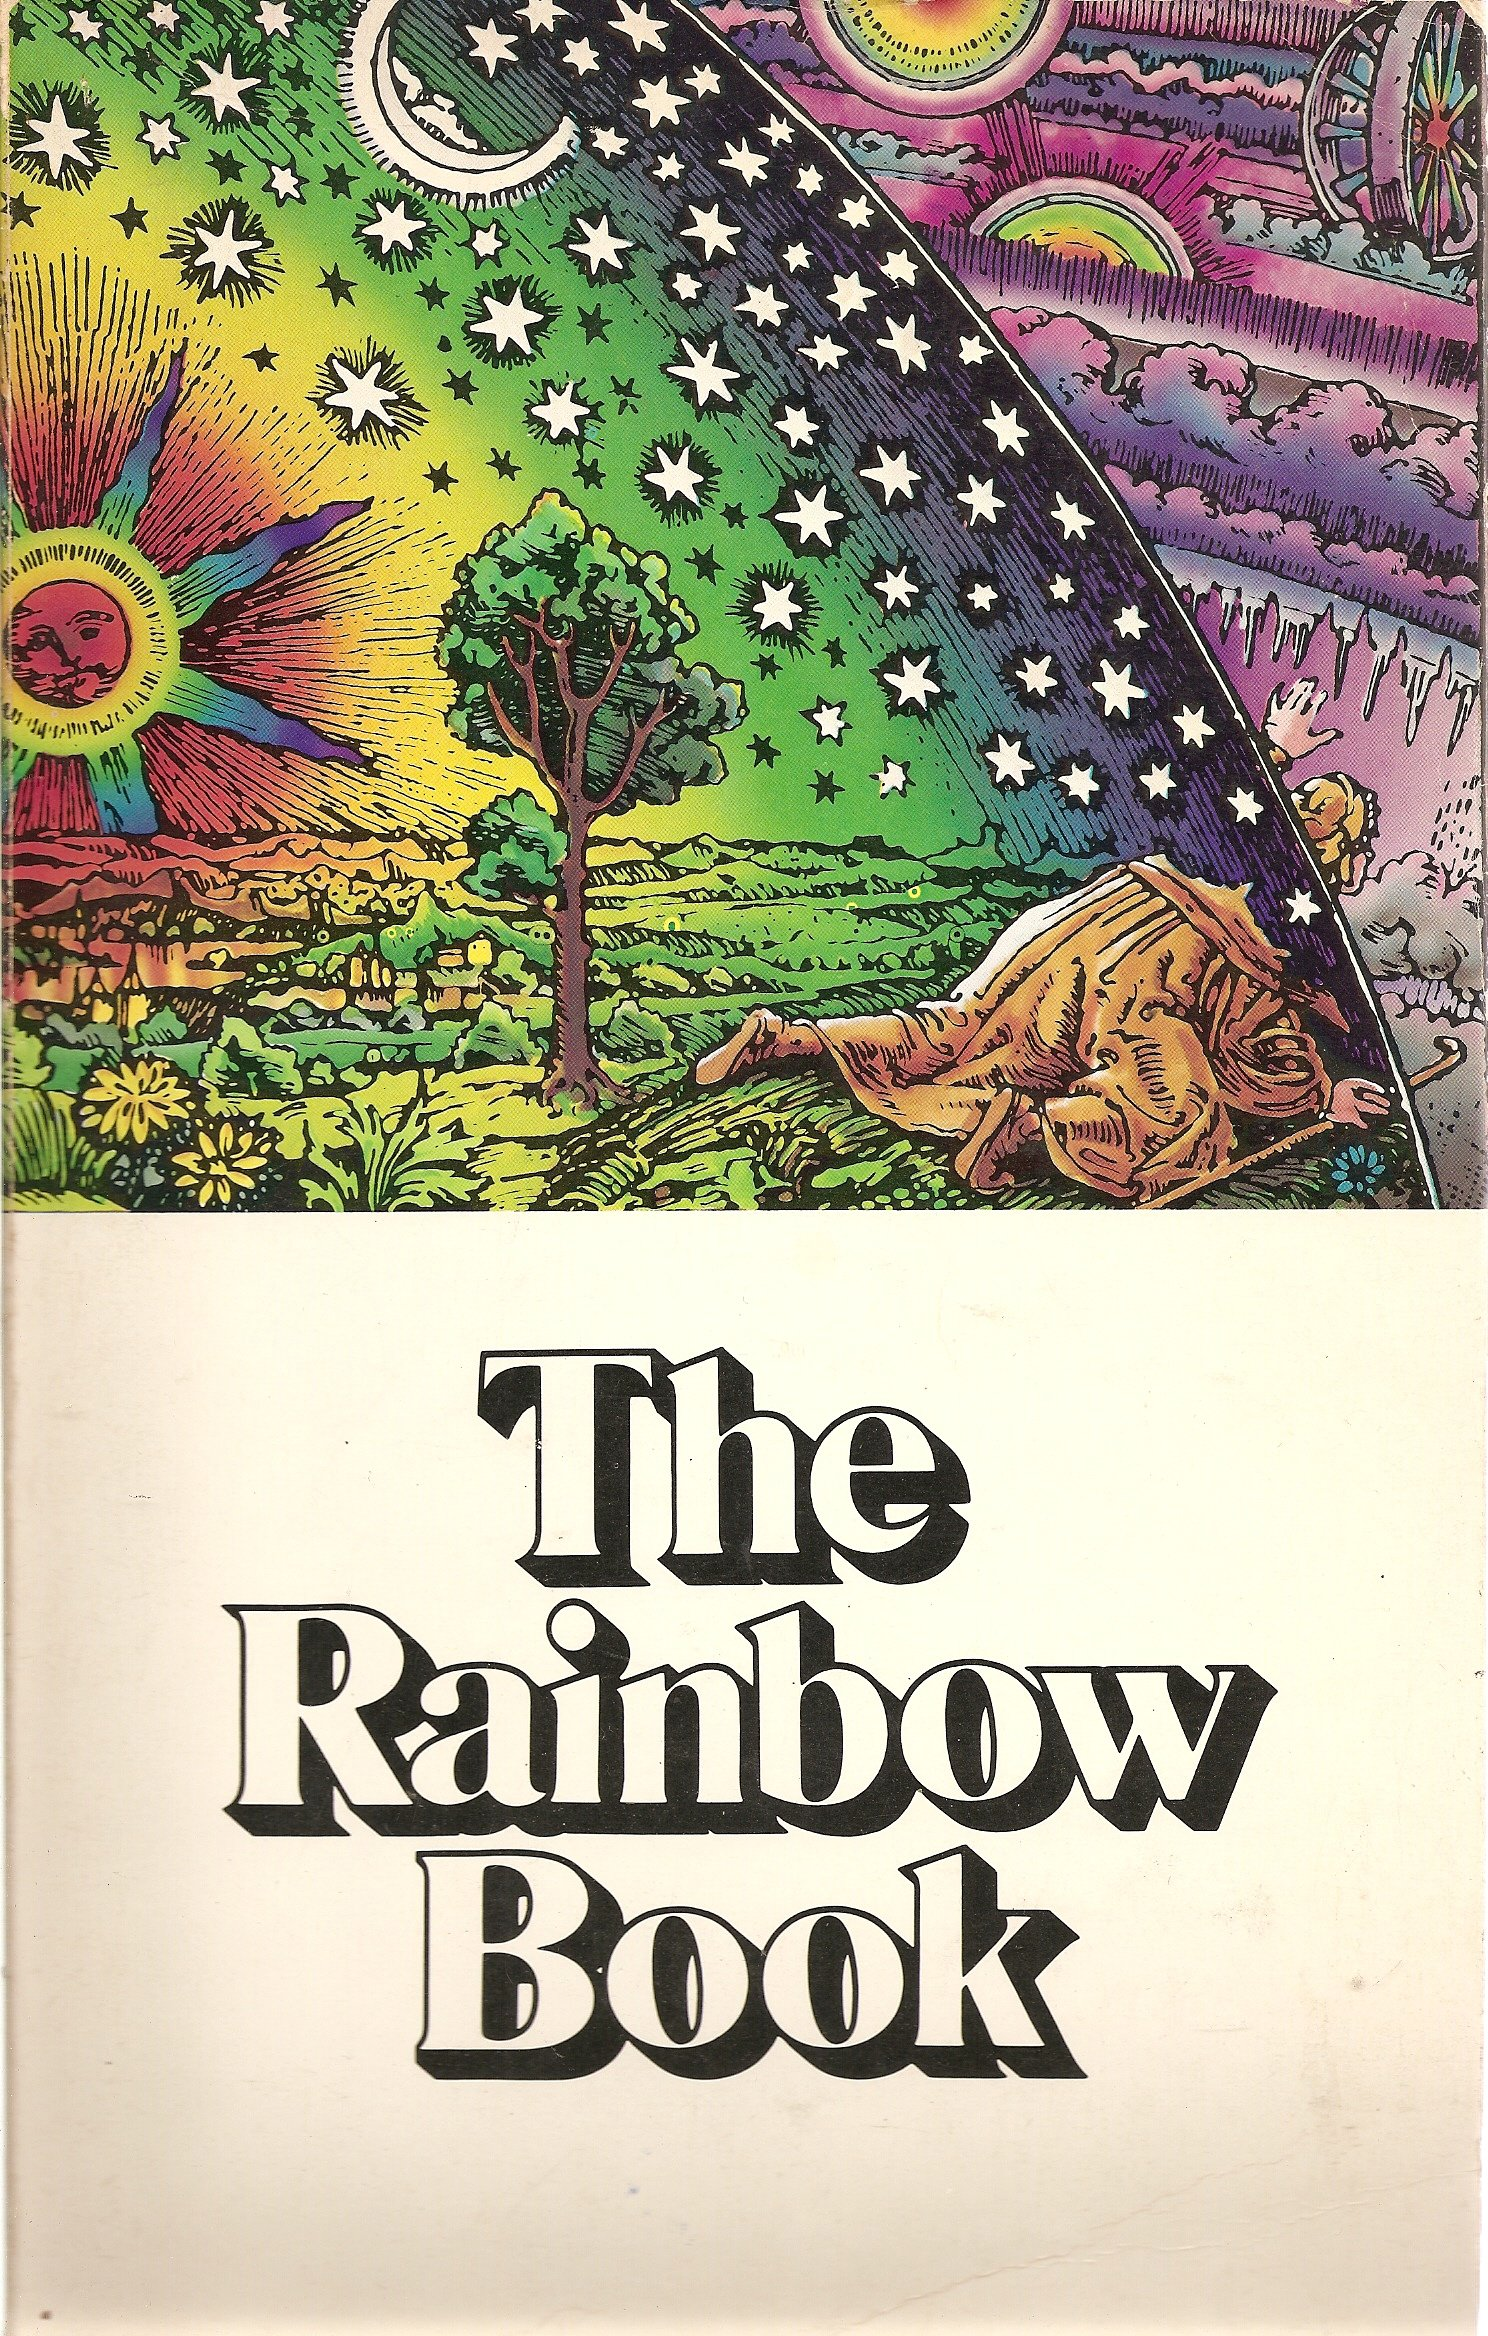 The Rainbow Book: Being a Collection of Essays & Illustrations Devoted to Rainbows in Particular & Spectral Sequences in General Focusing on the ... Metaphysically) from Ancient to Modern Times